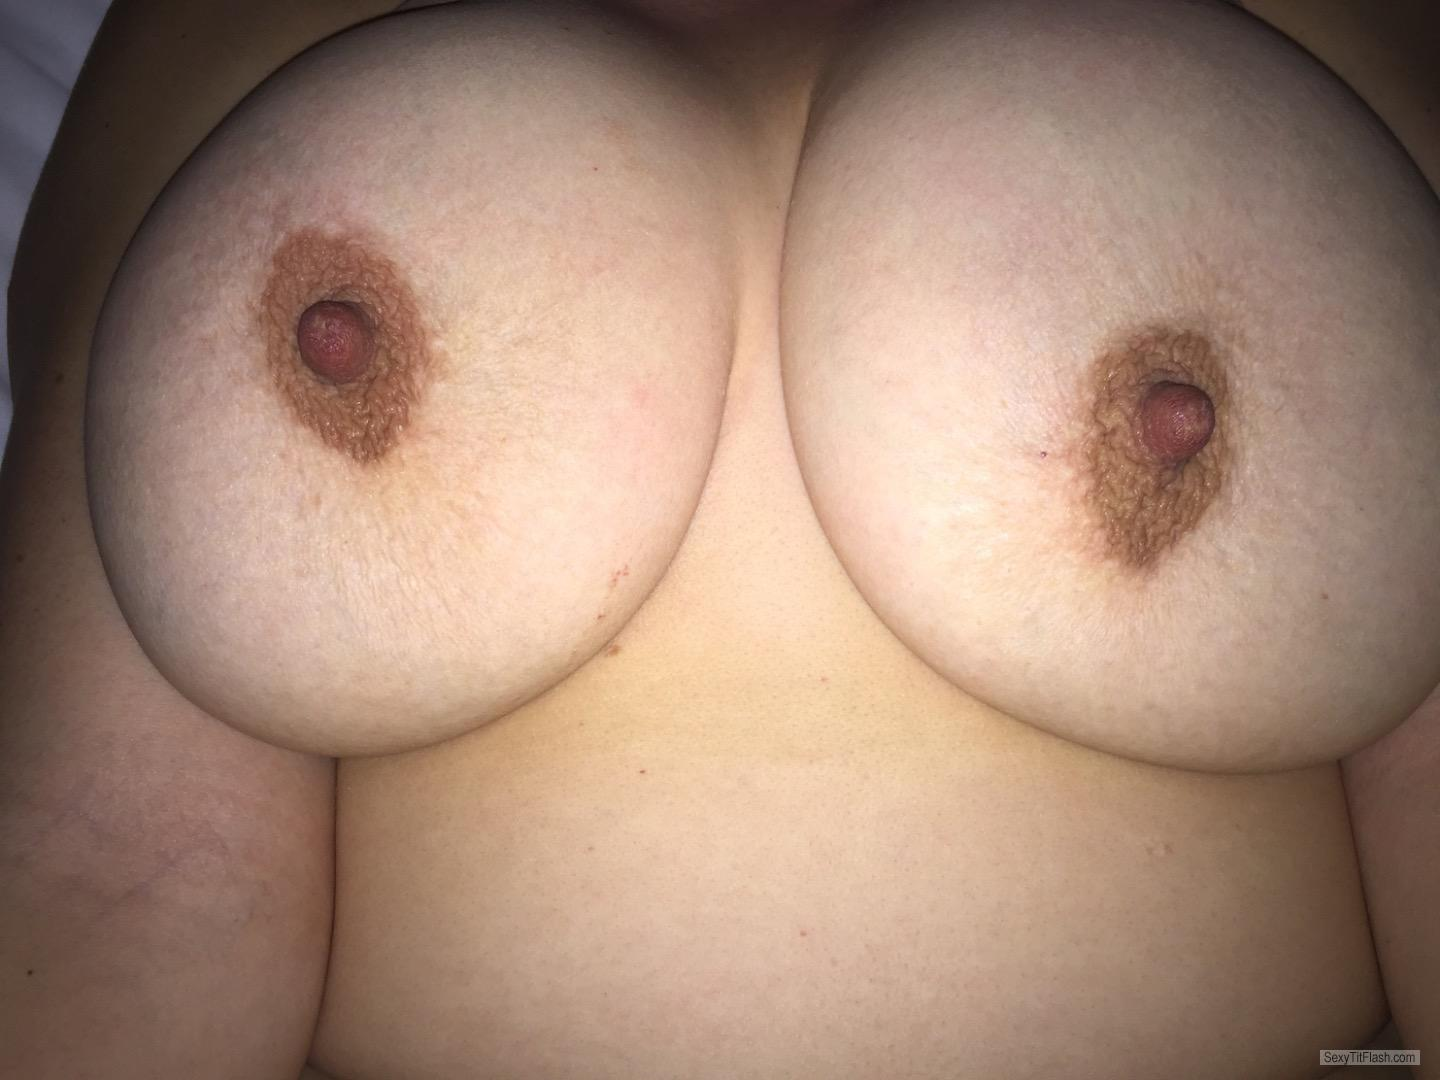 Tit Flash: Wife's Very Big Tits - JJ's Fun Bags from United States